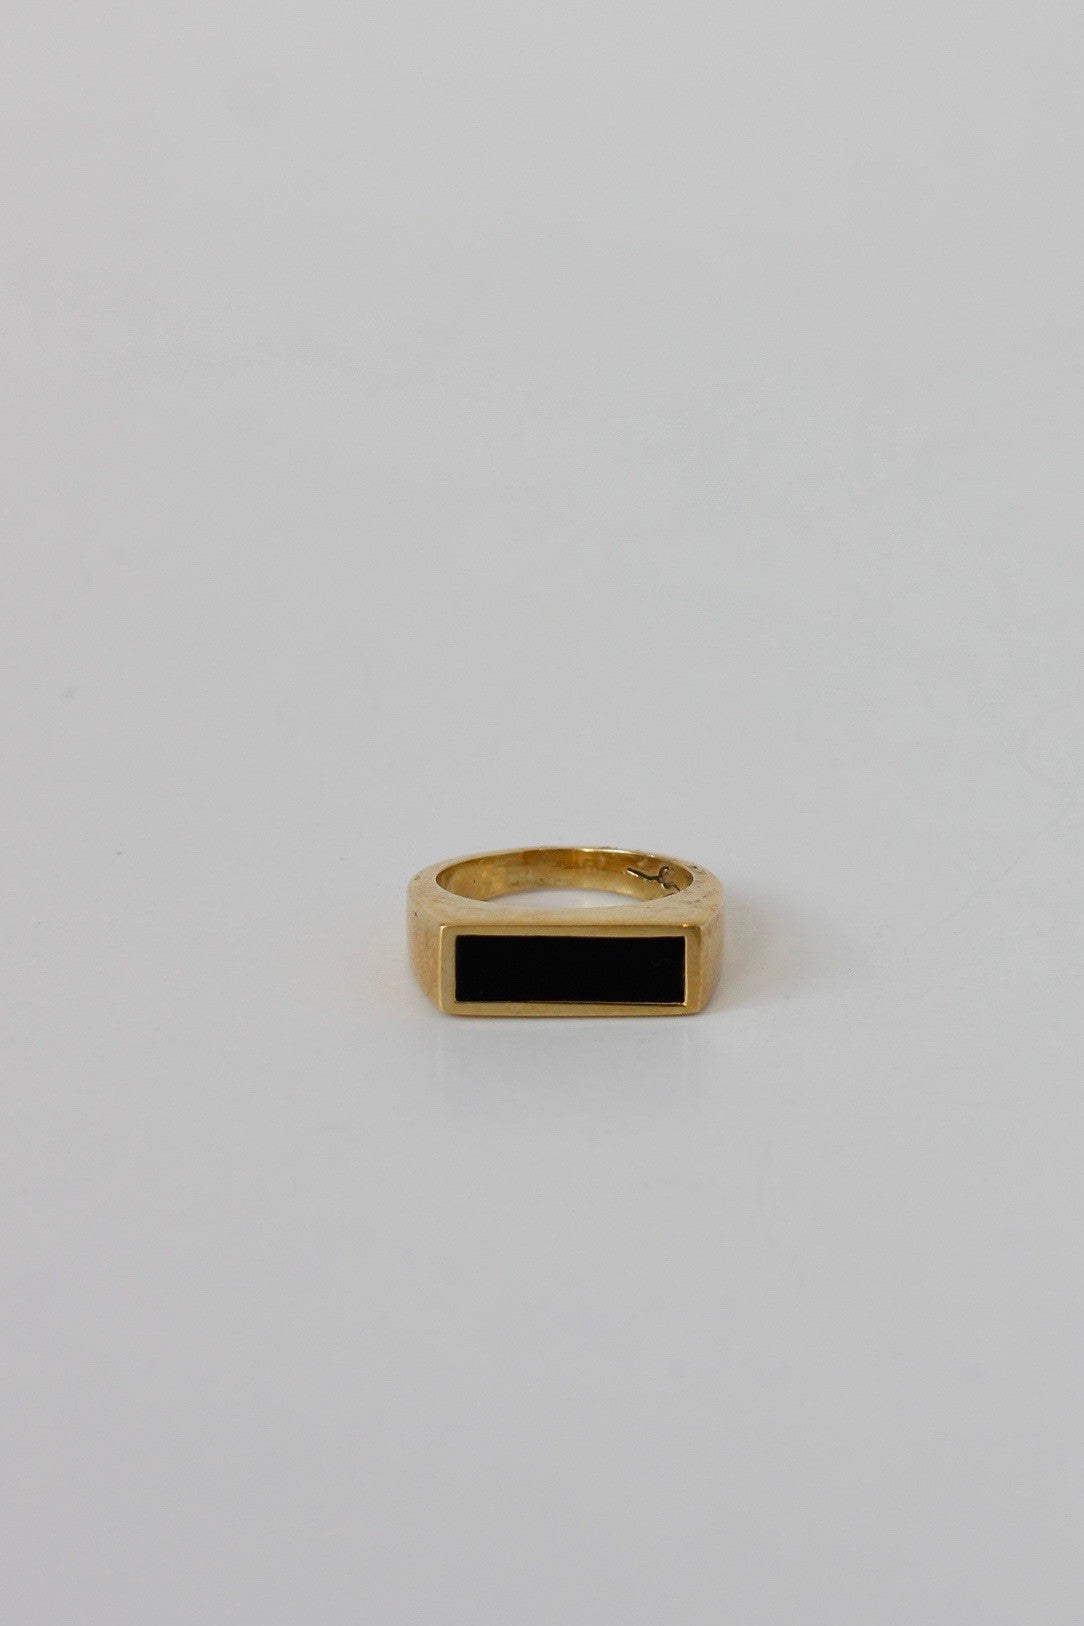 LEGIER Small Signet Ring - Habits Jackson Hole